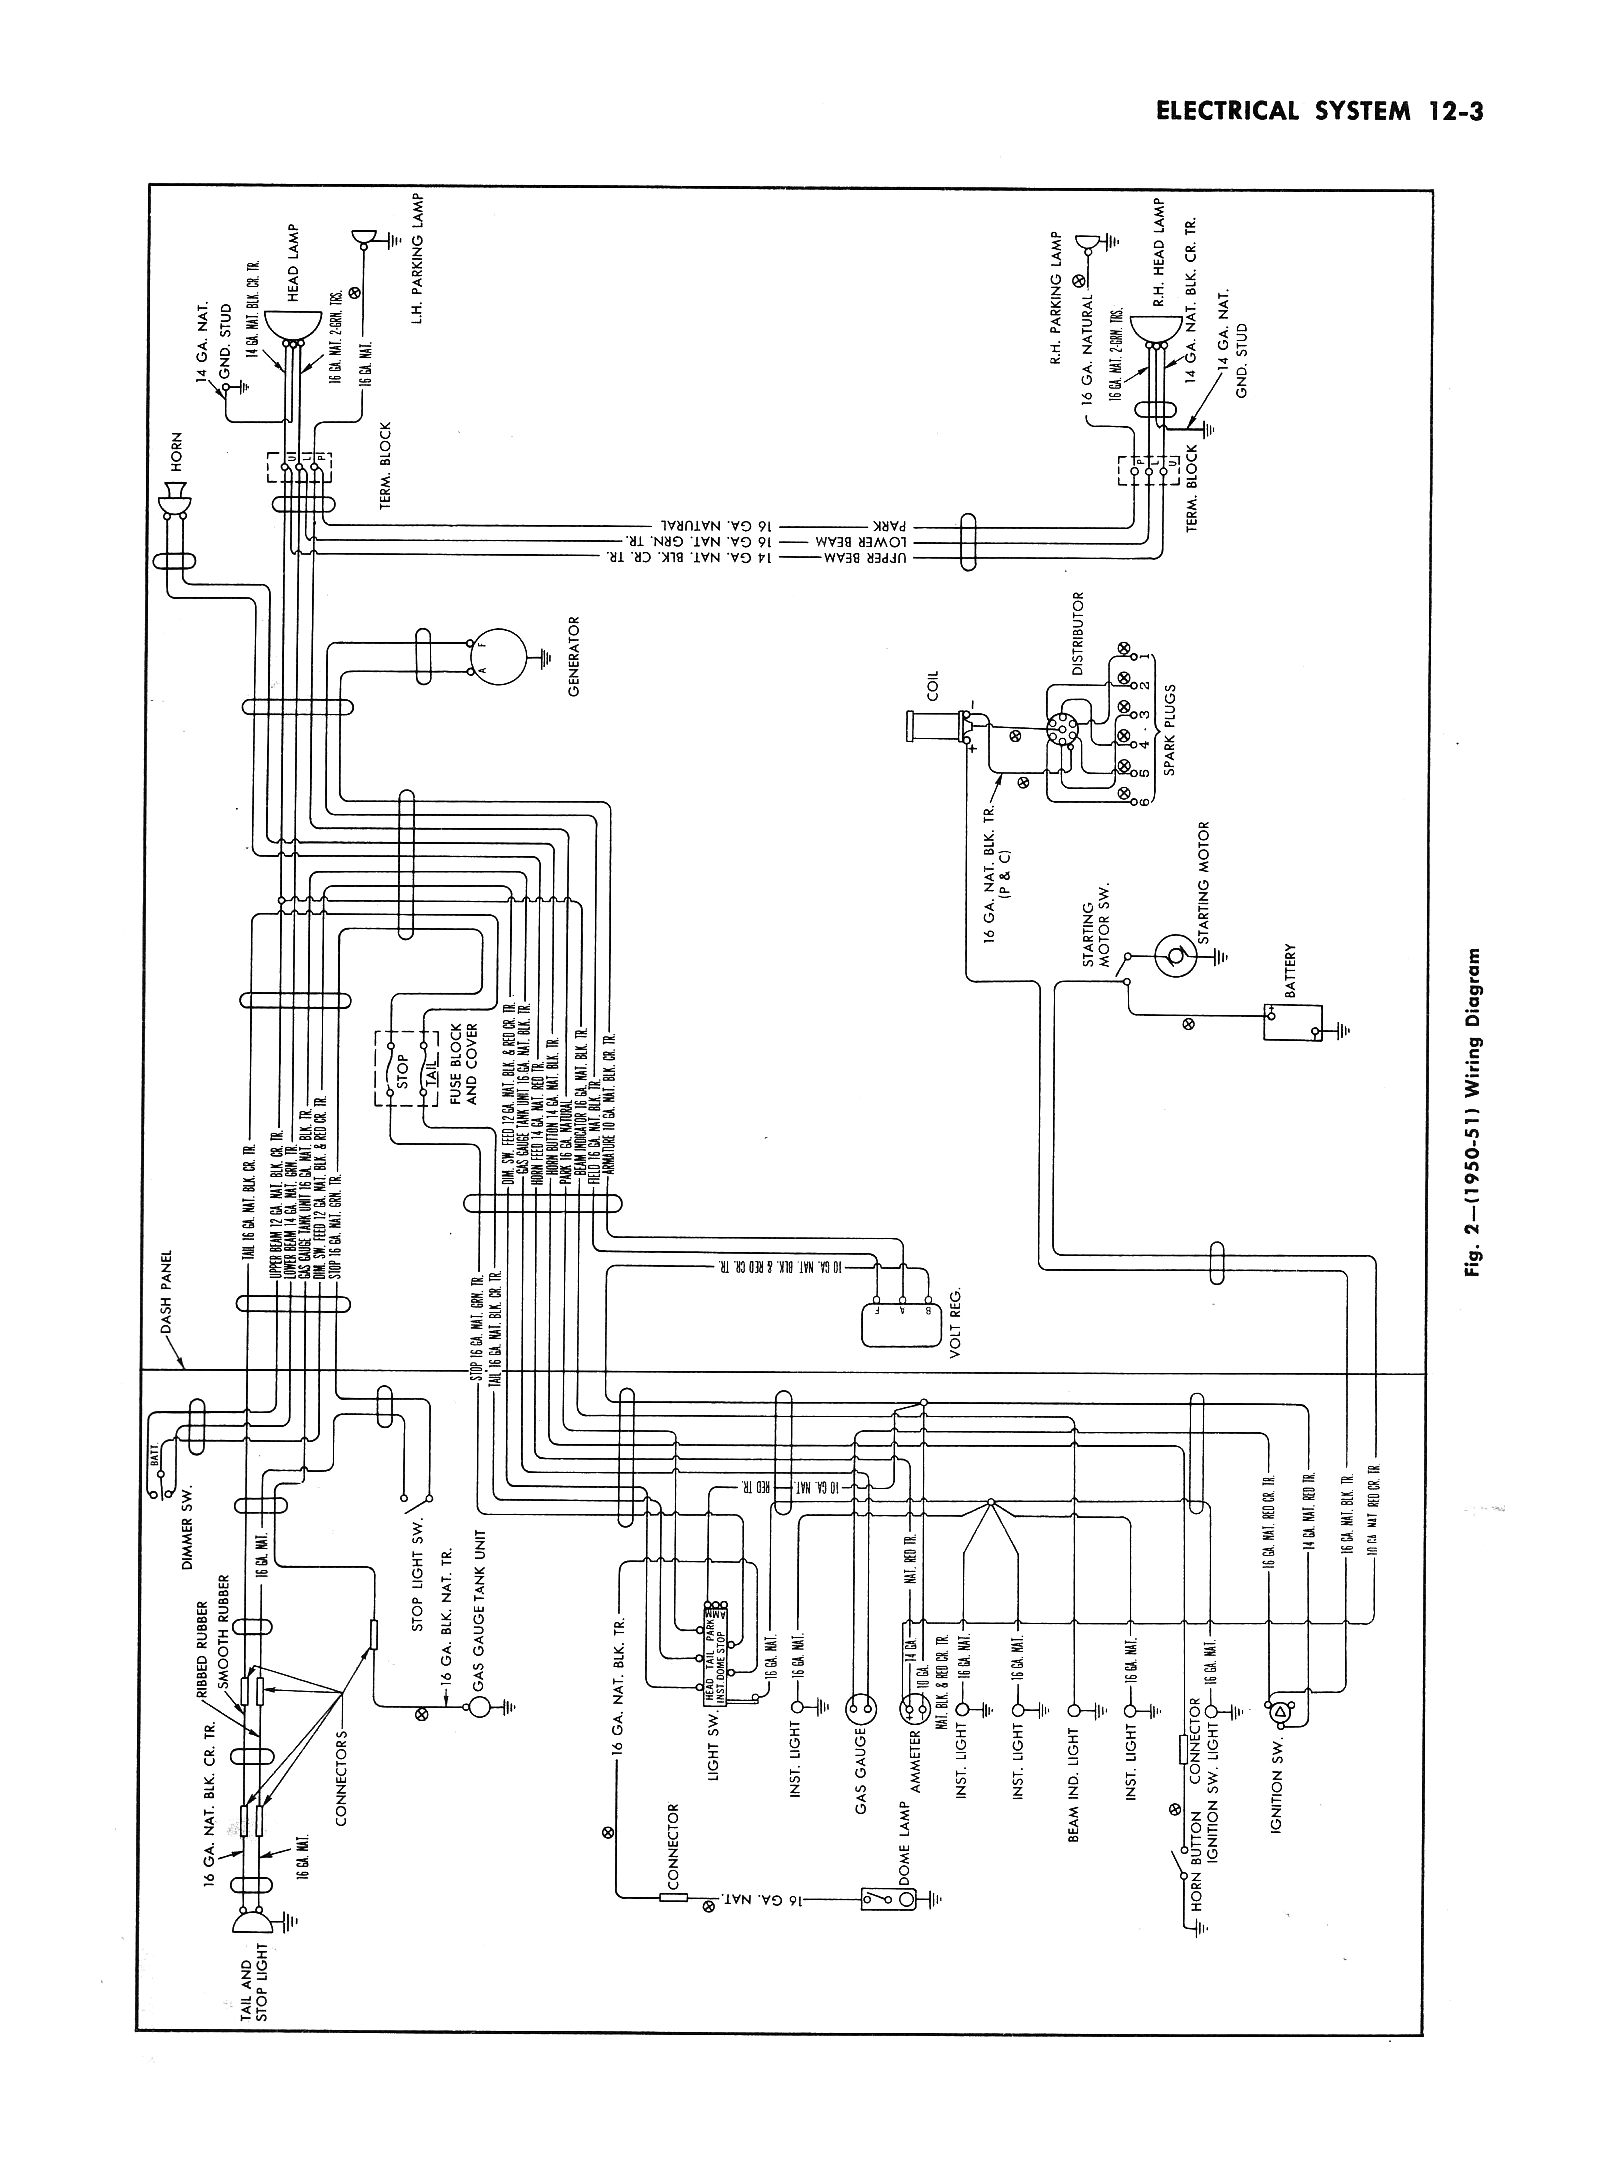 2000 Sunnybrook Wiring Diagram Free Download Wiring Diagram